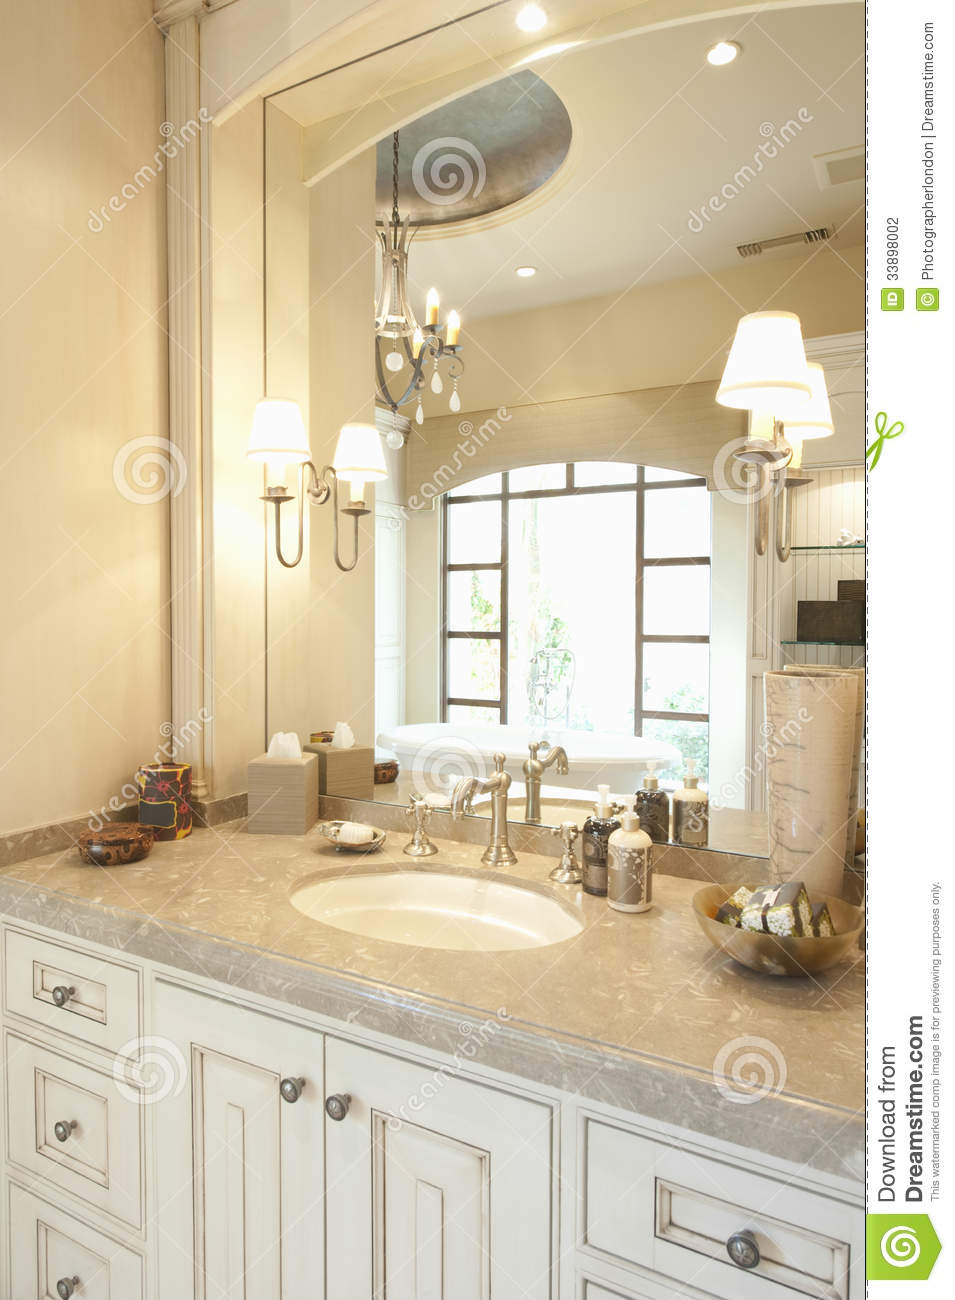 Modern Bathroom Stock Photo Image Of Showcase Cupboard